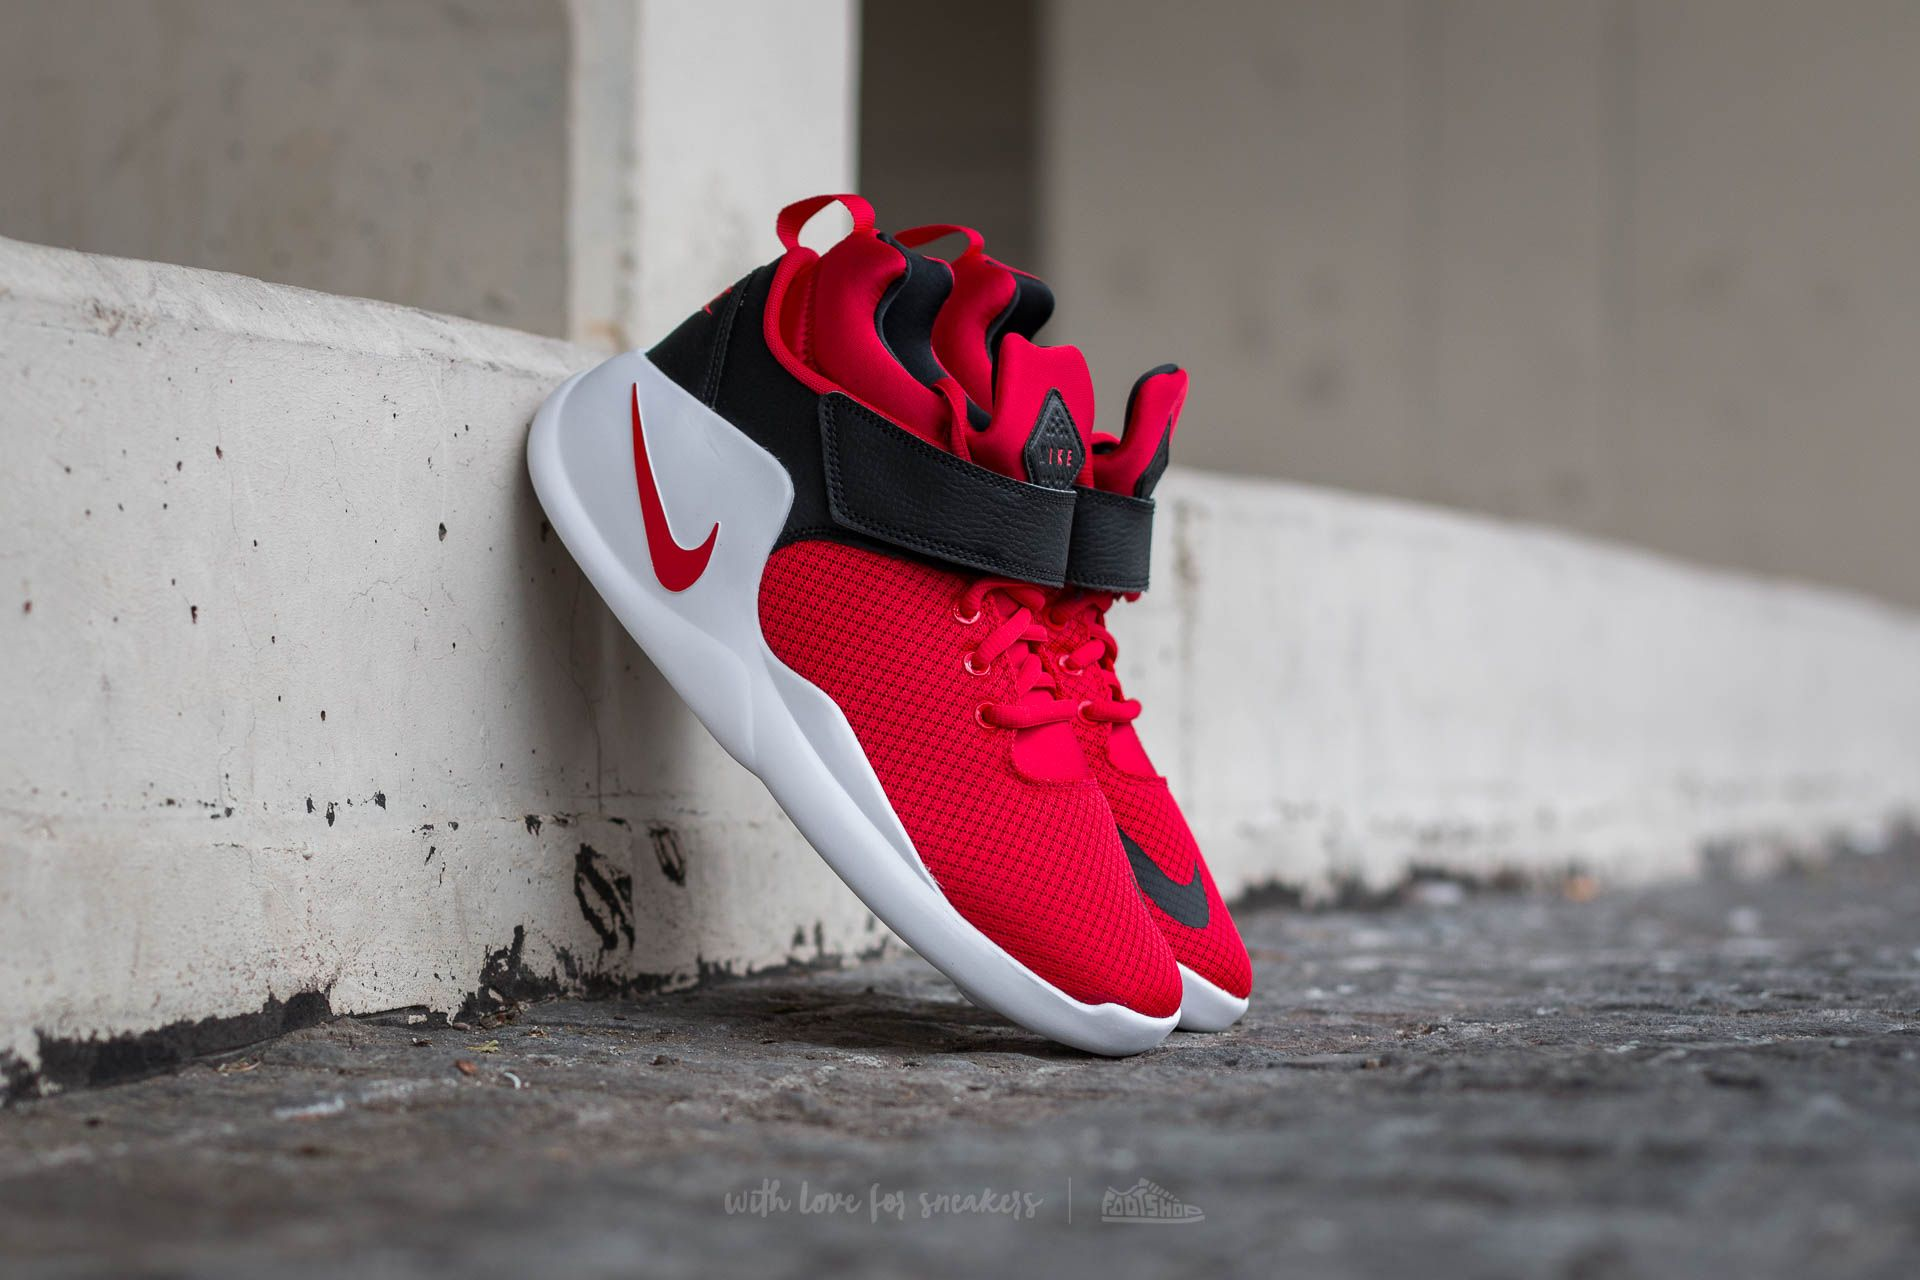 reputable site c1a1a 35ffe Nike Kwazi (GS) University Red  Black   Footshop